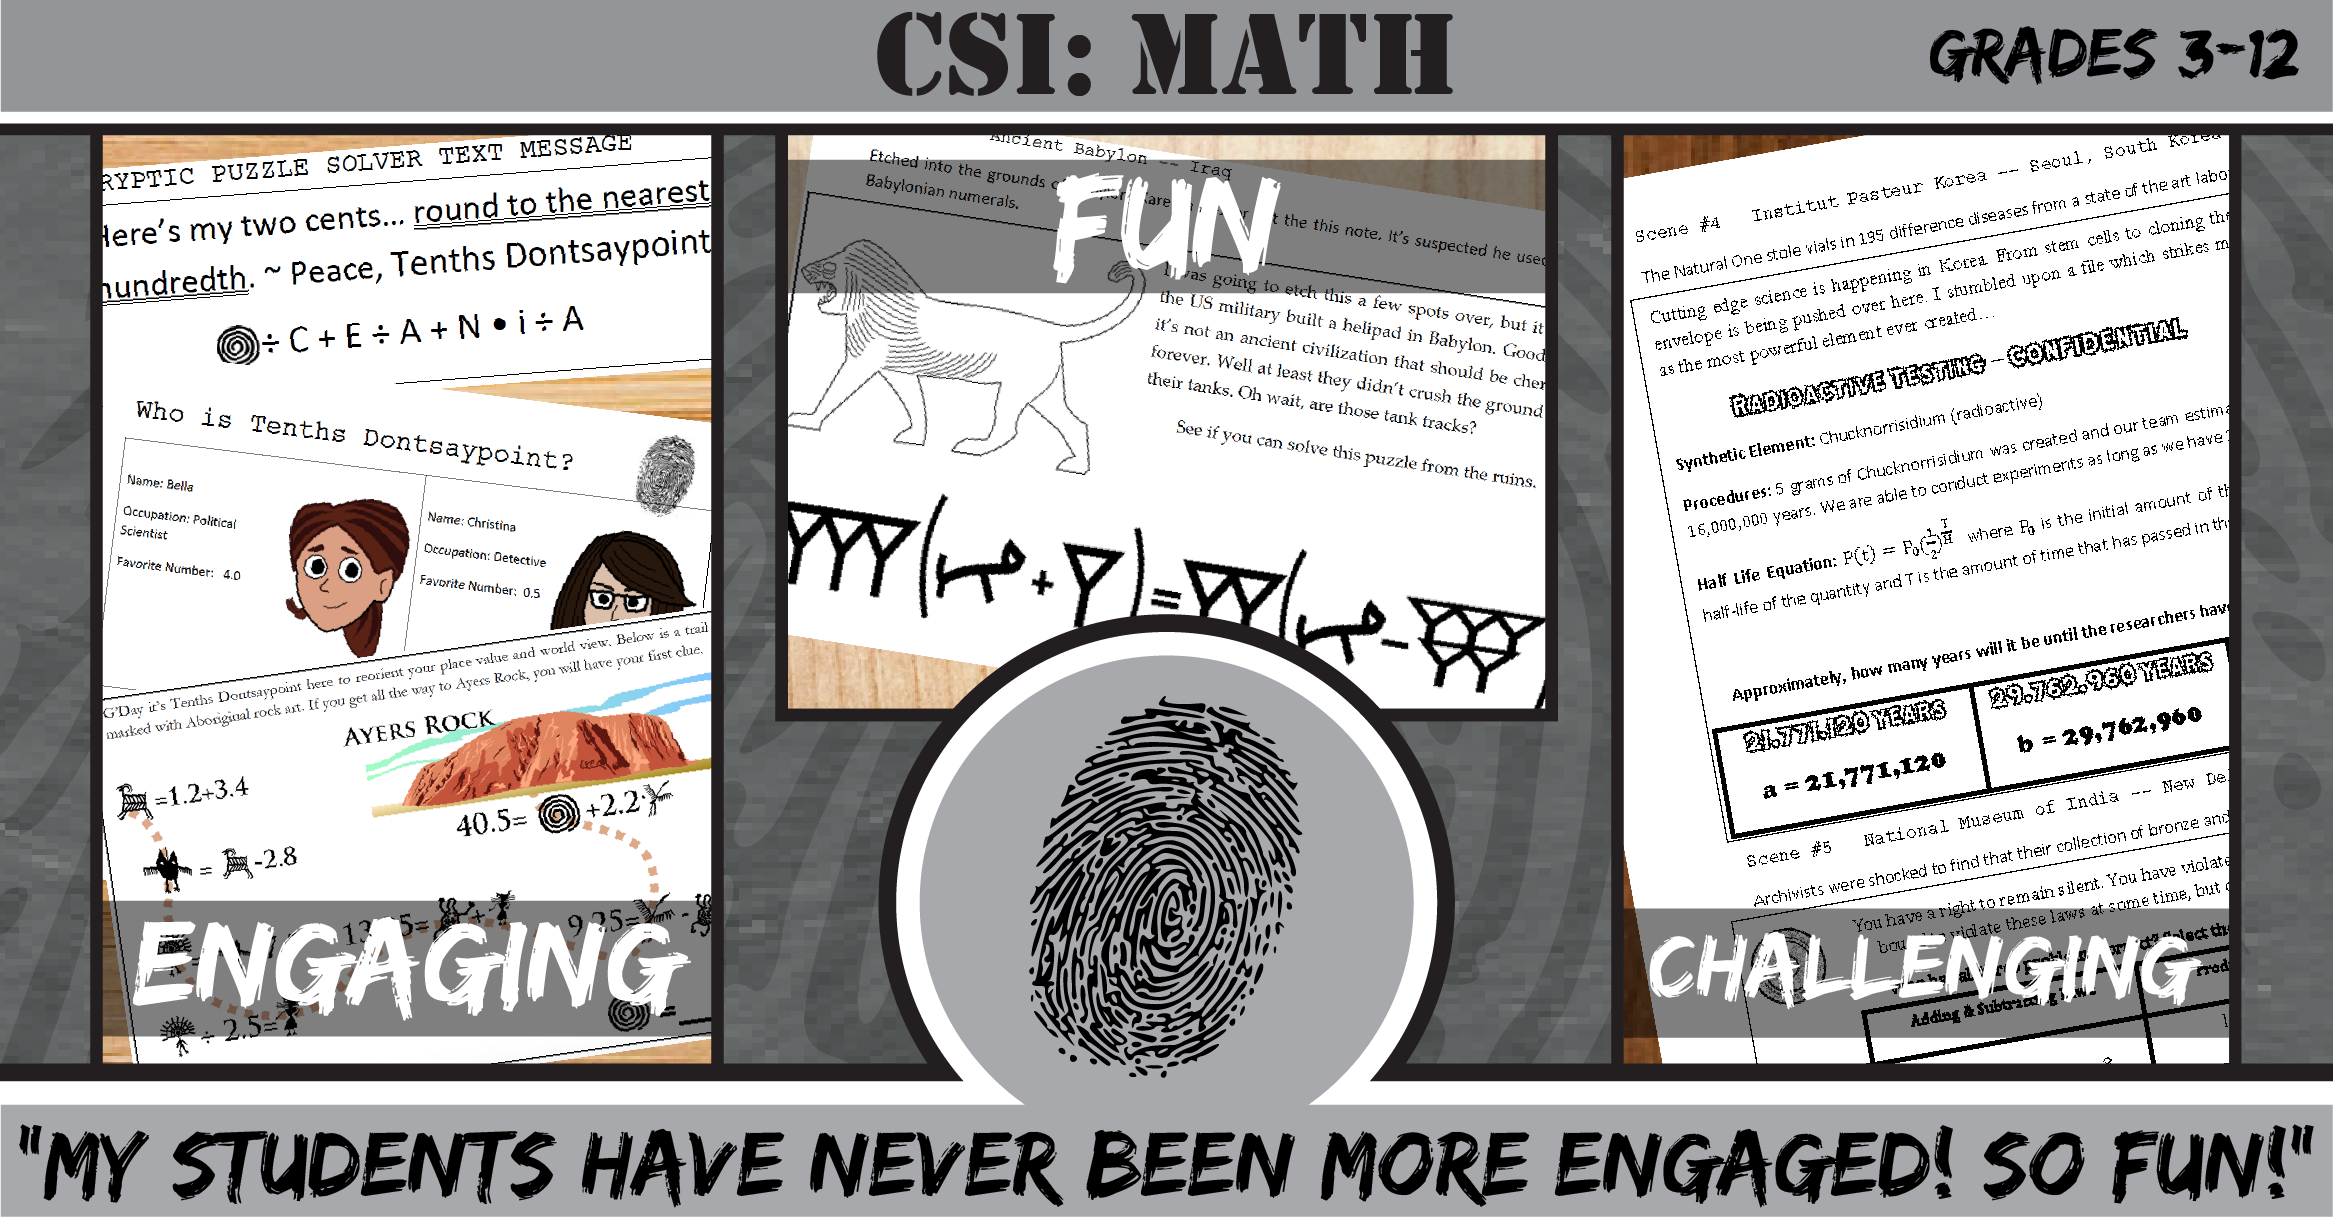 Csi Investigations From 21st Century Math Projects